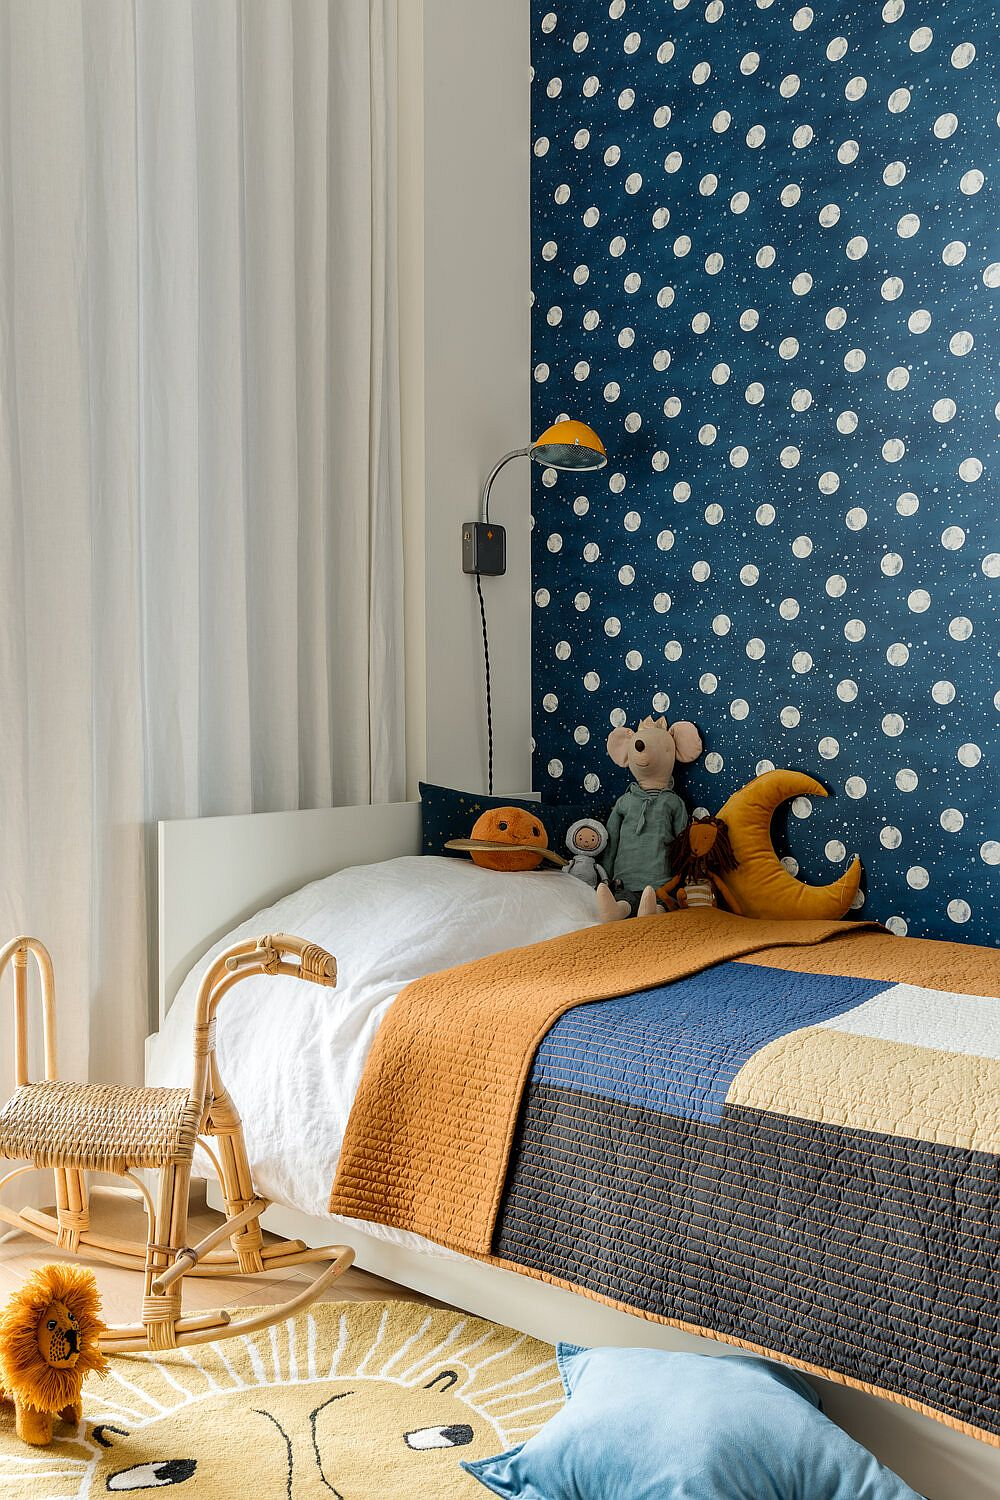 Modern-kids-room-with-colorful-backdrop-in-blue-that-features-polka-dot-pattern-17440